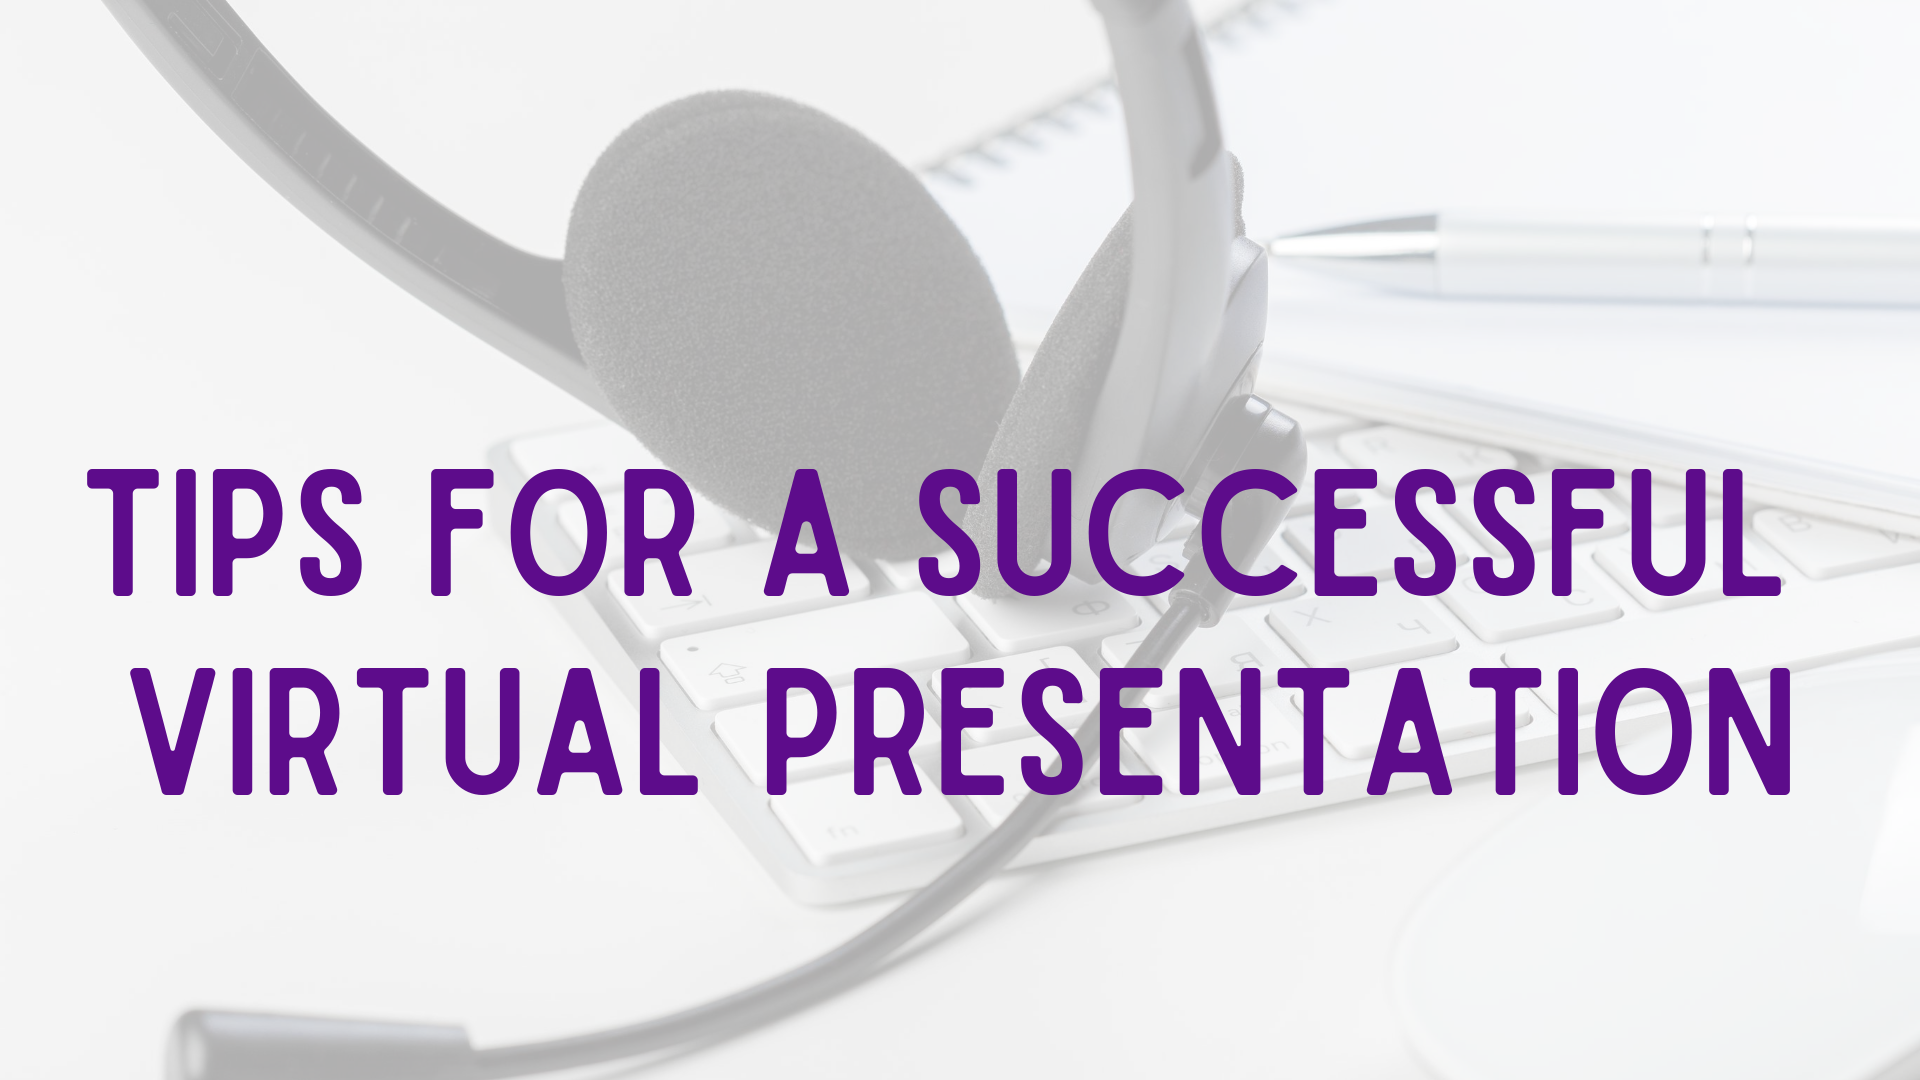 tips-for-successful-virtual-presentation.png